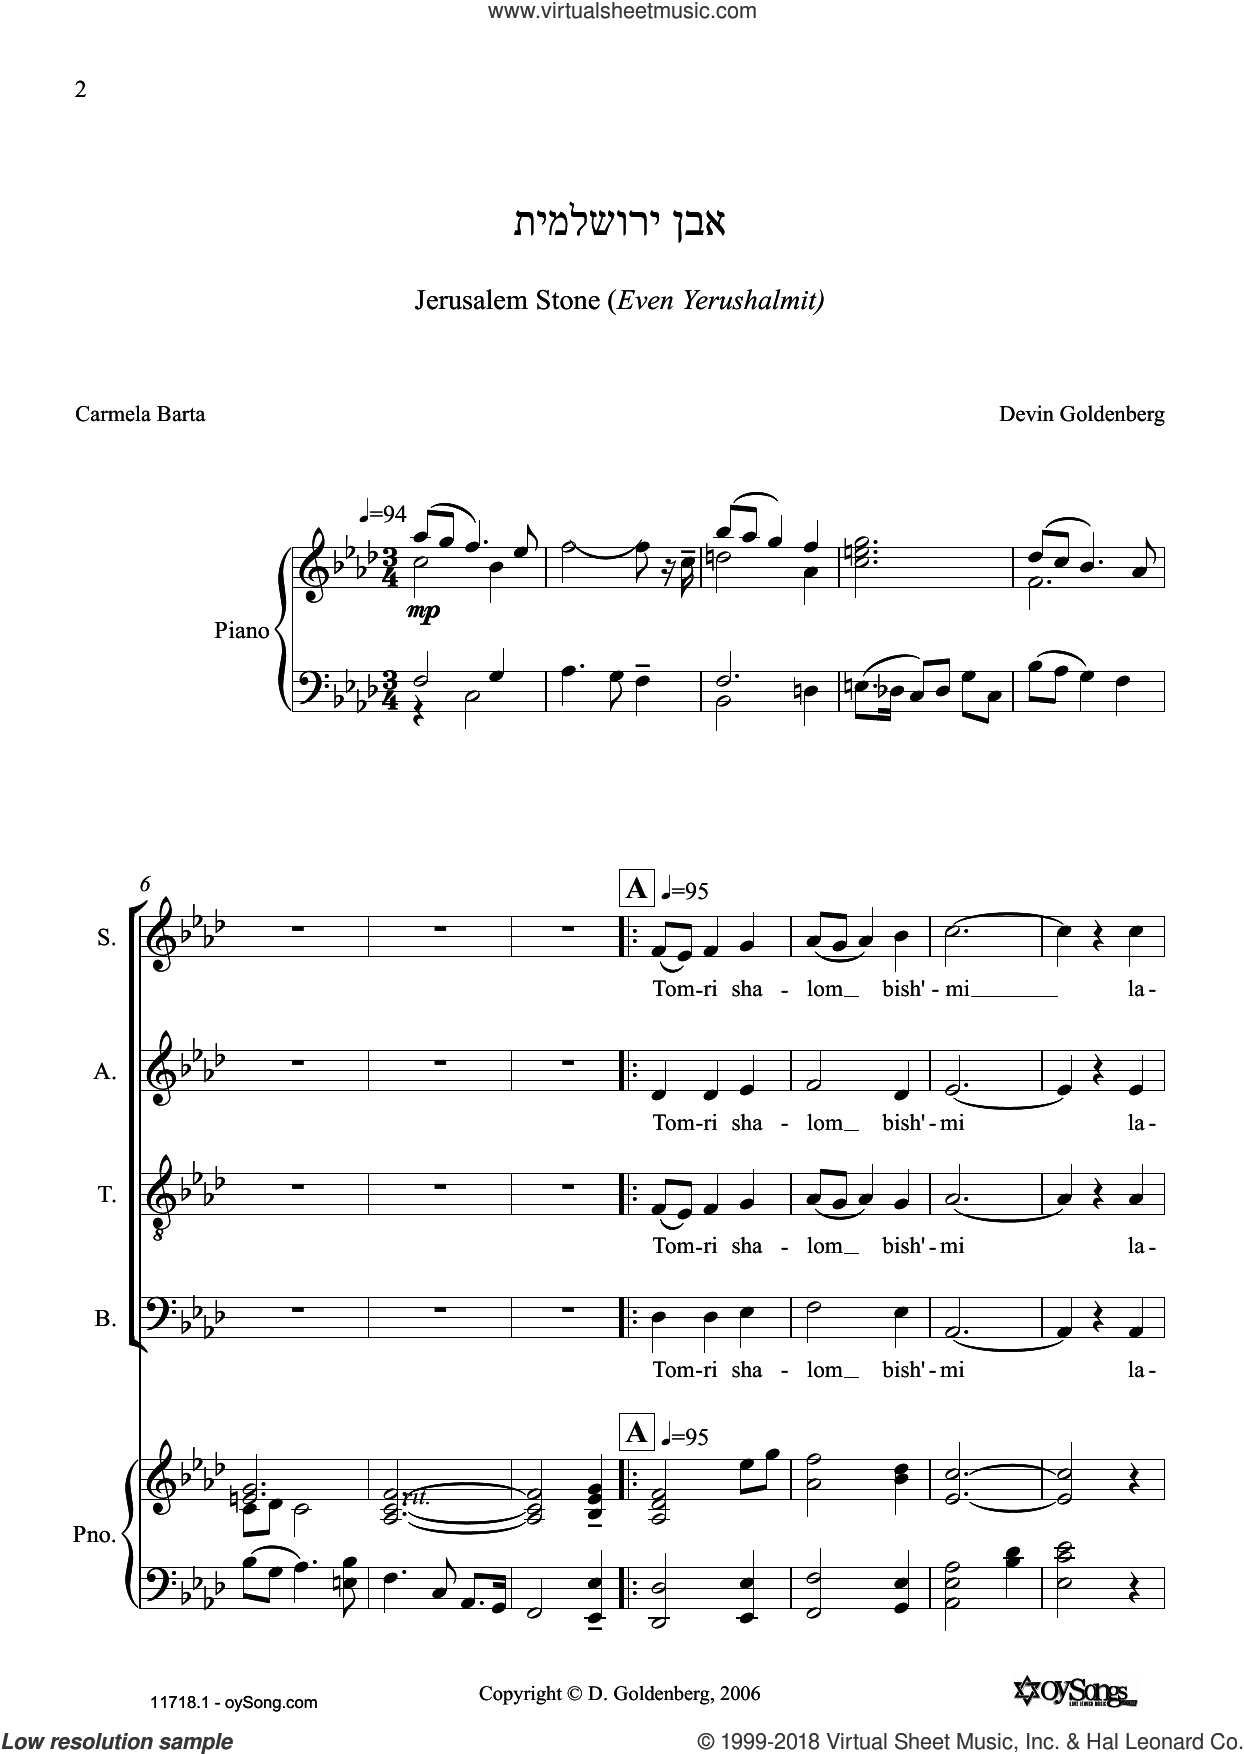 Even Yerushalmit (Jerusalem Stone) sheet music for choir and piano (SATB) by Devin Goldenberg